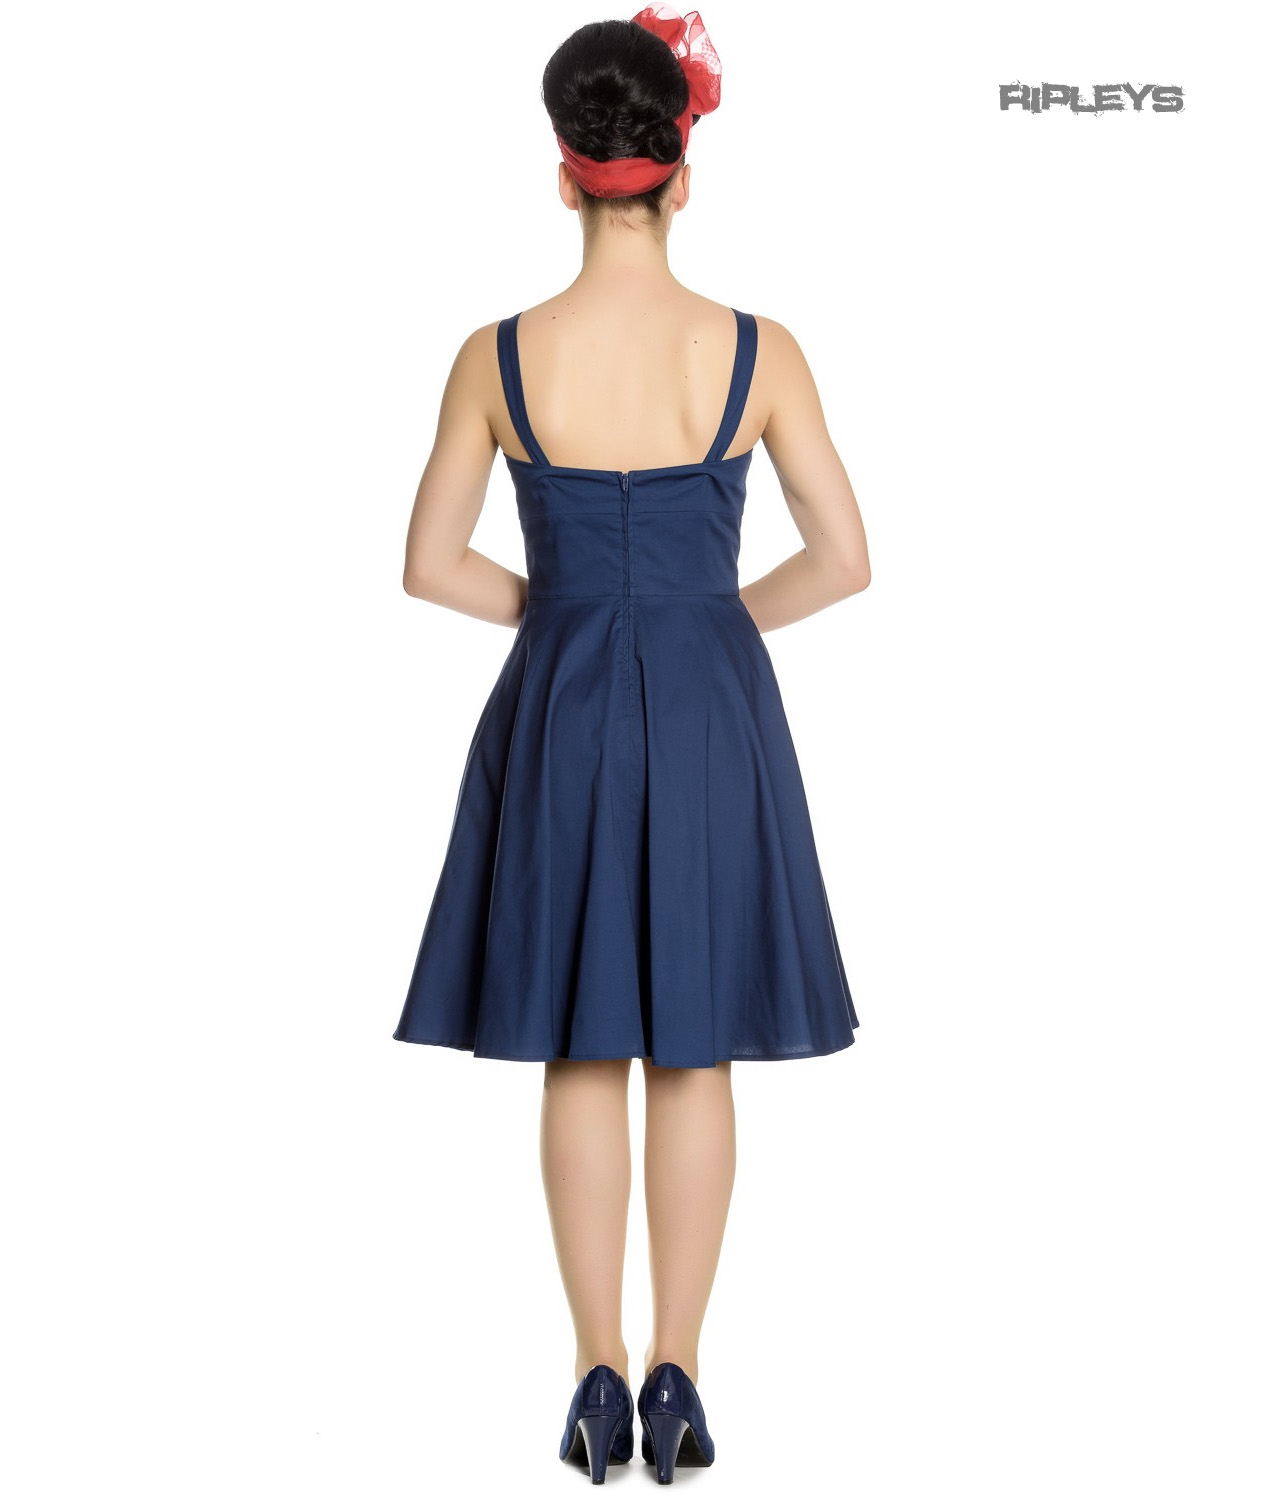 Hell-Bunny-Vintage-50s-Pin-Up-Dress-Navy-Blue-SELA-Nautical-Anchors-All-Sizes thumbnail 12